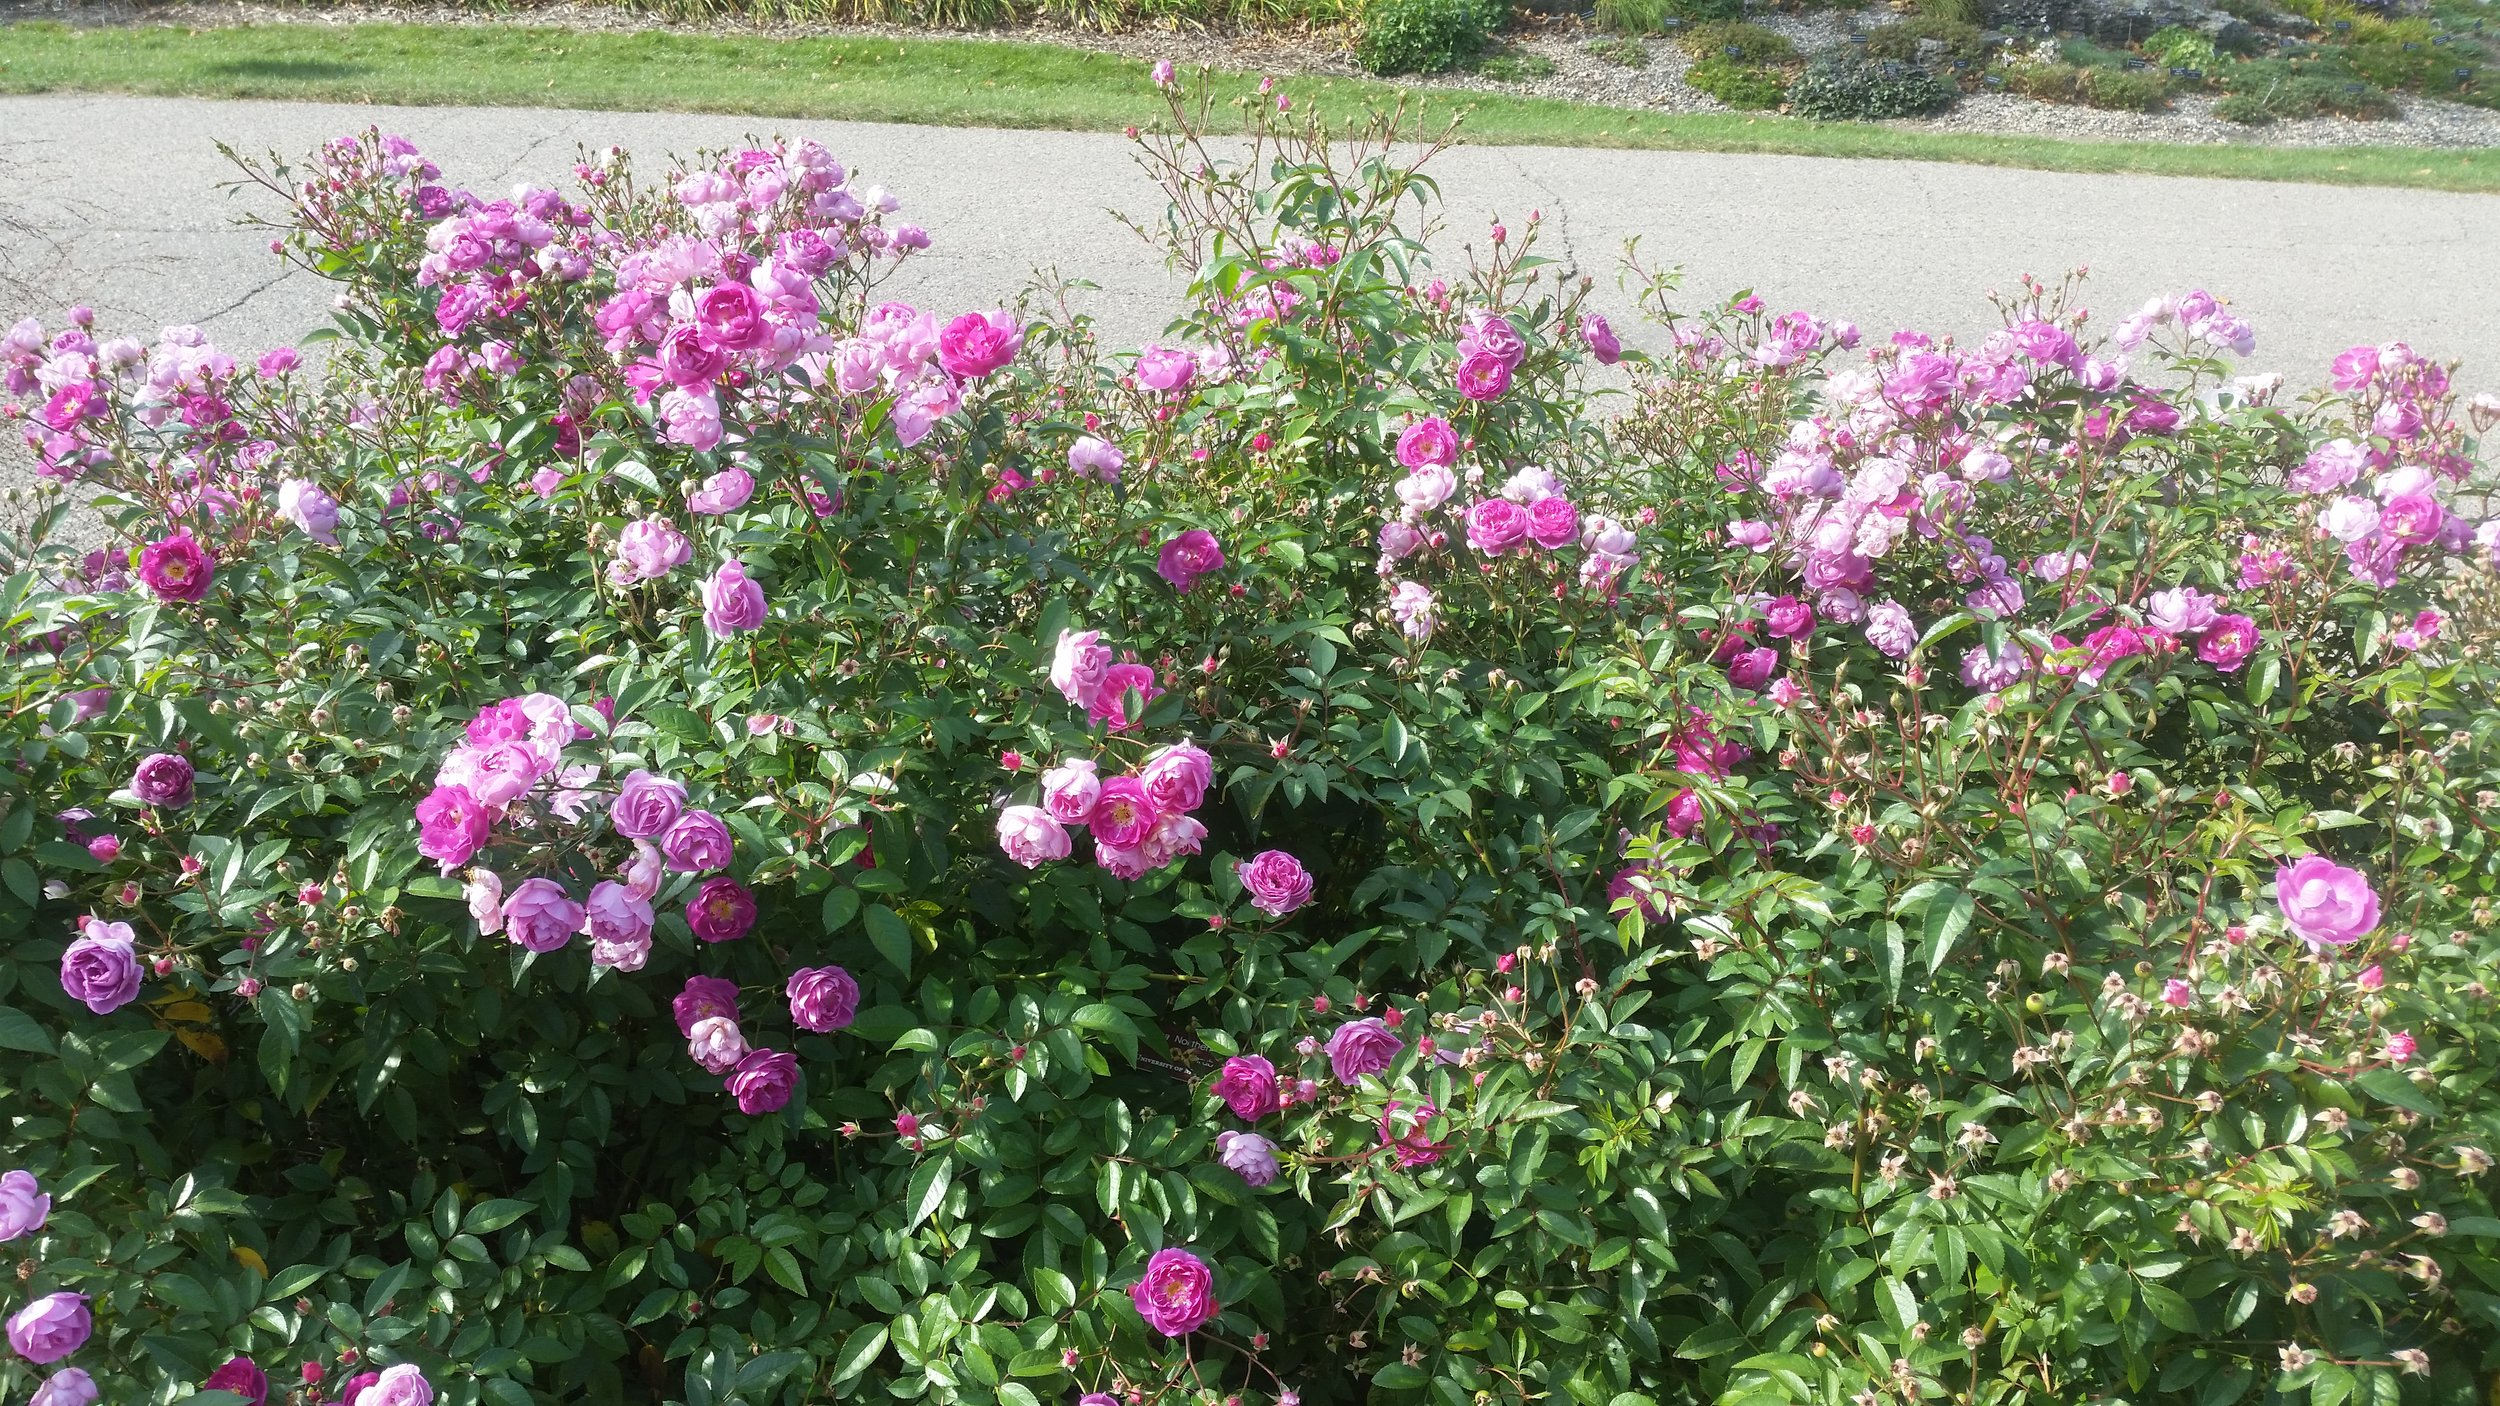 Rosa  'Northern Accents Sven' (a hardy shrub rose) puts on a riotous display of blooms at the MN Landscape Arboretum.